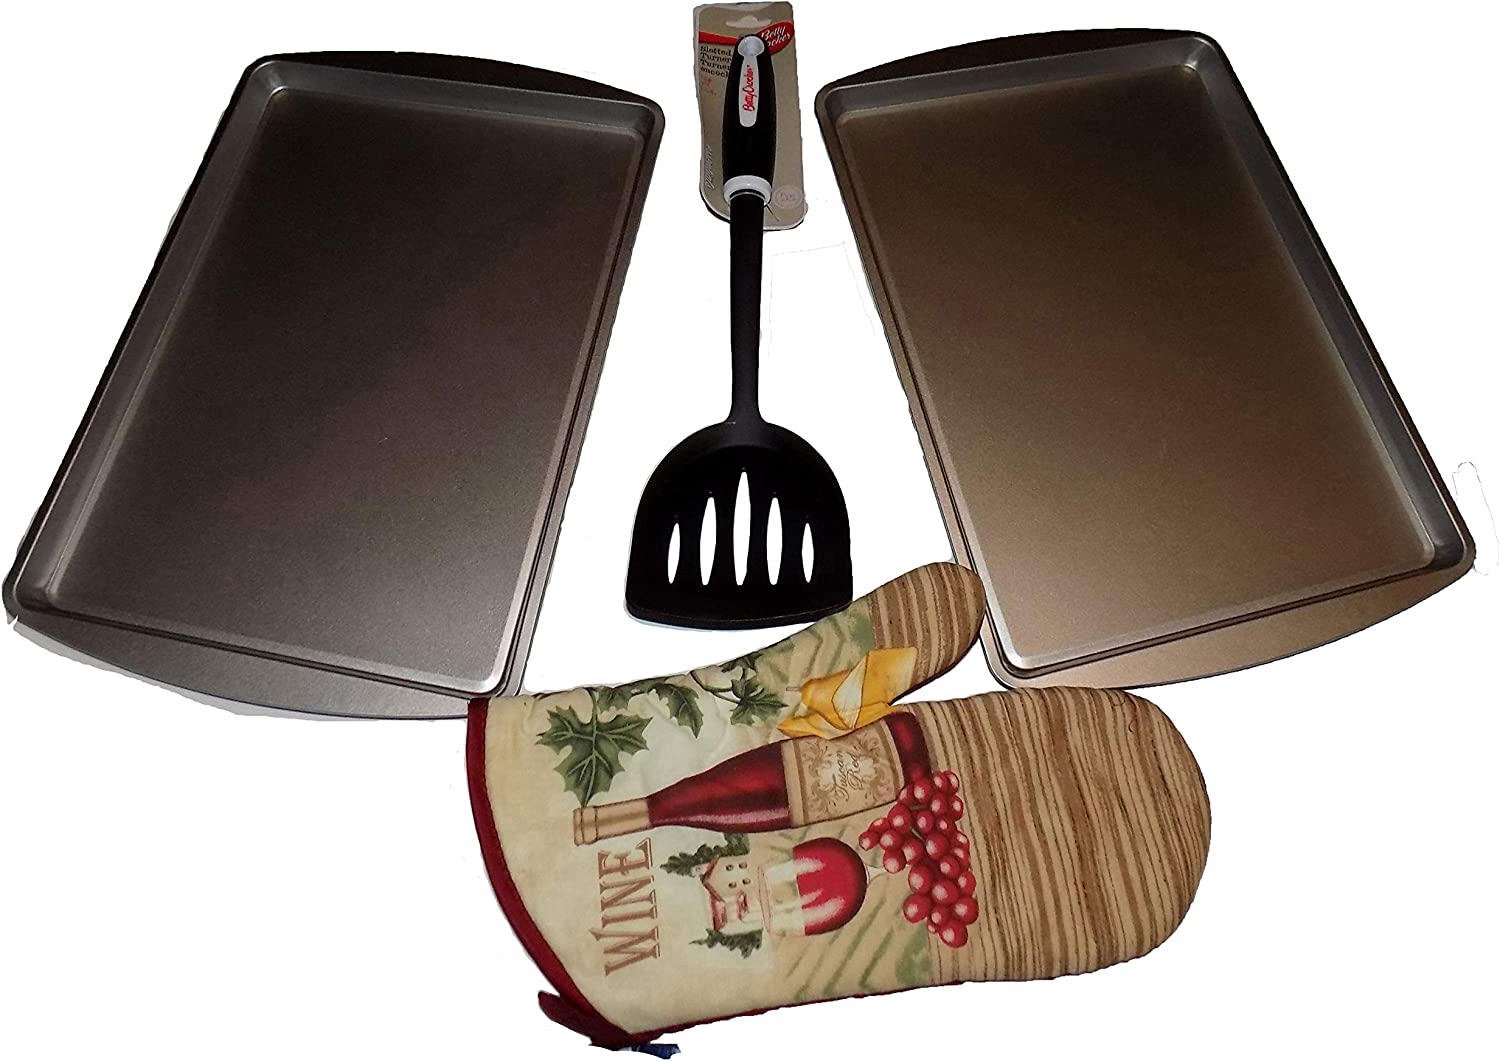 Cookie & Biscuit Baking Set of 2 Cookie Sheets, Betty Crocker Spatula Slotted Turner and a Decorative Oven Mitten